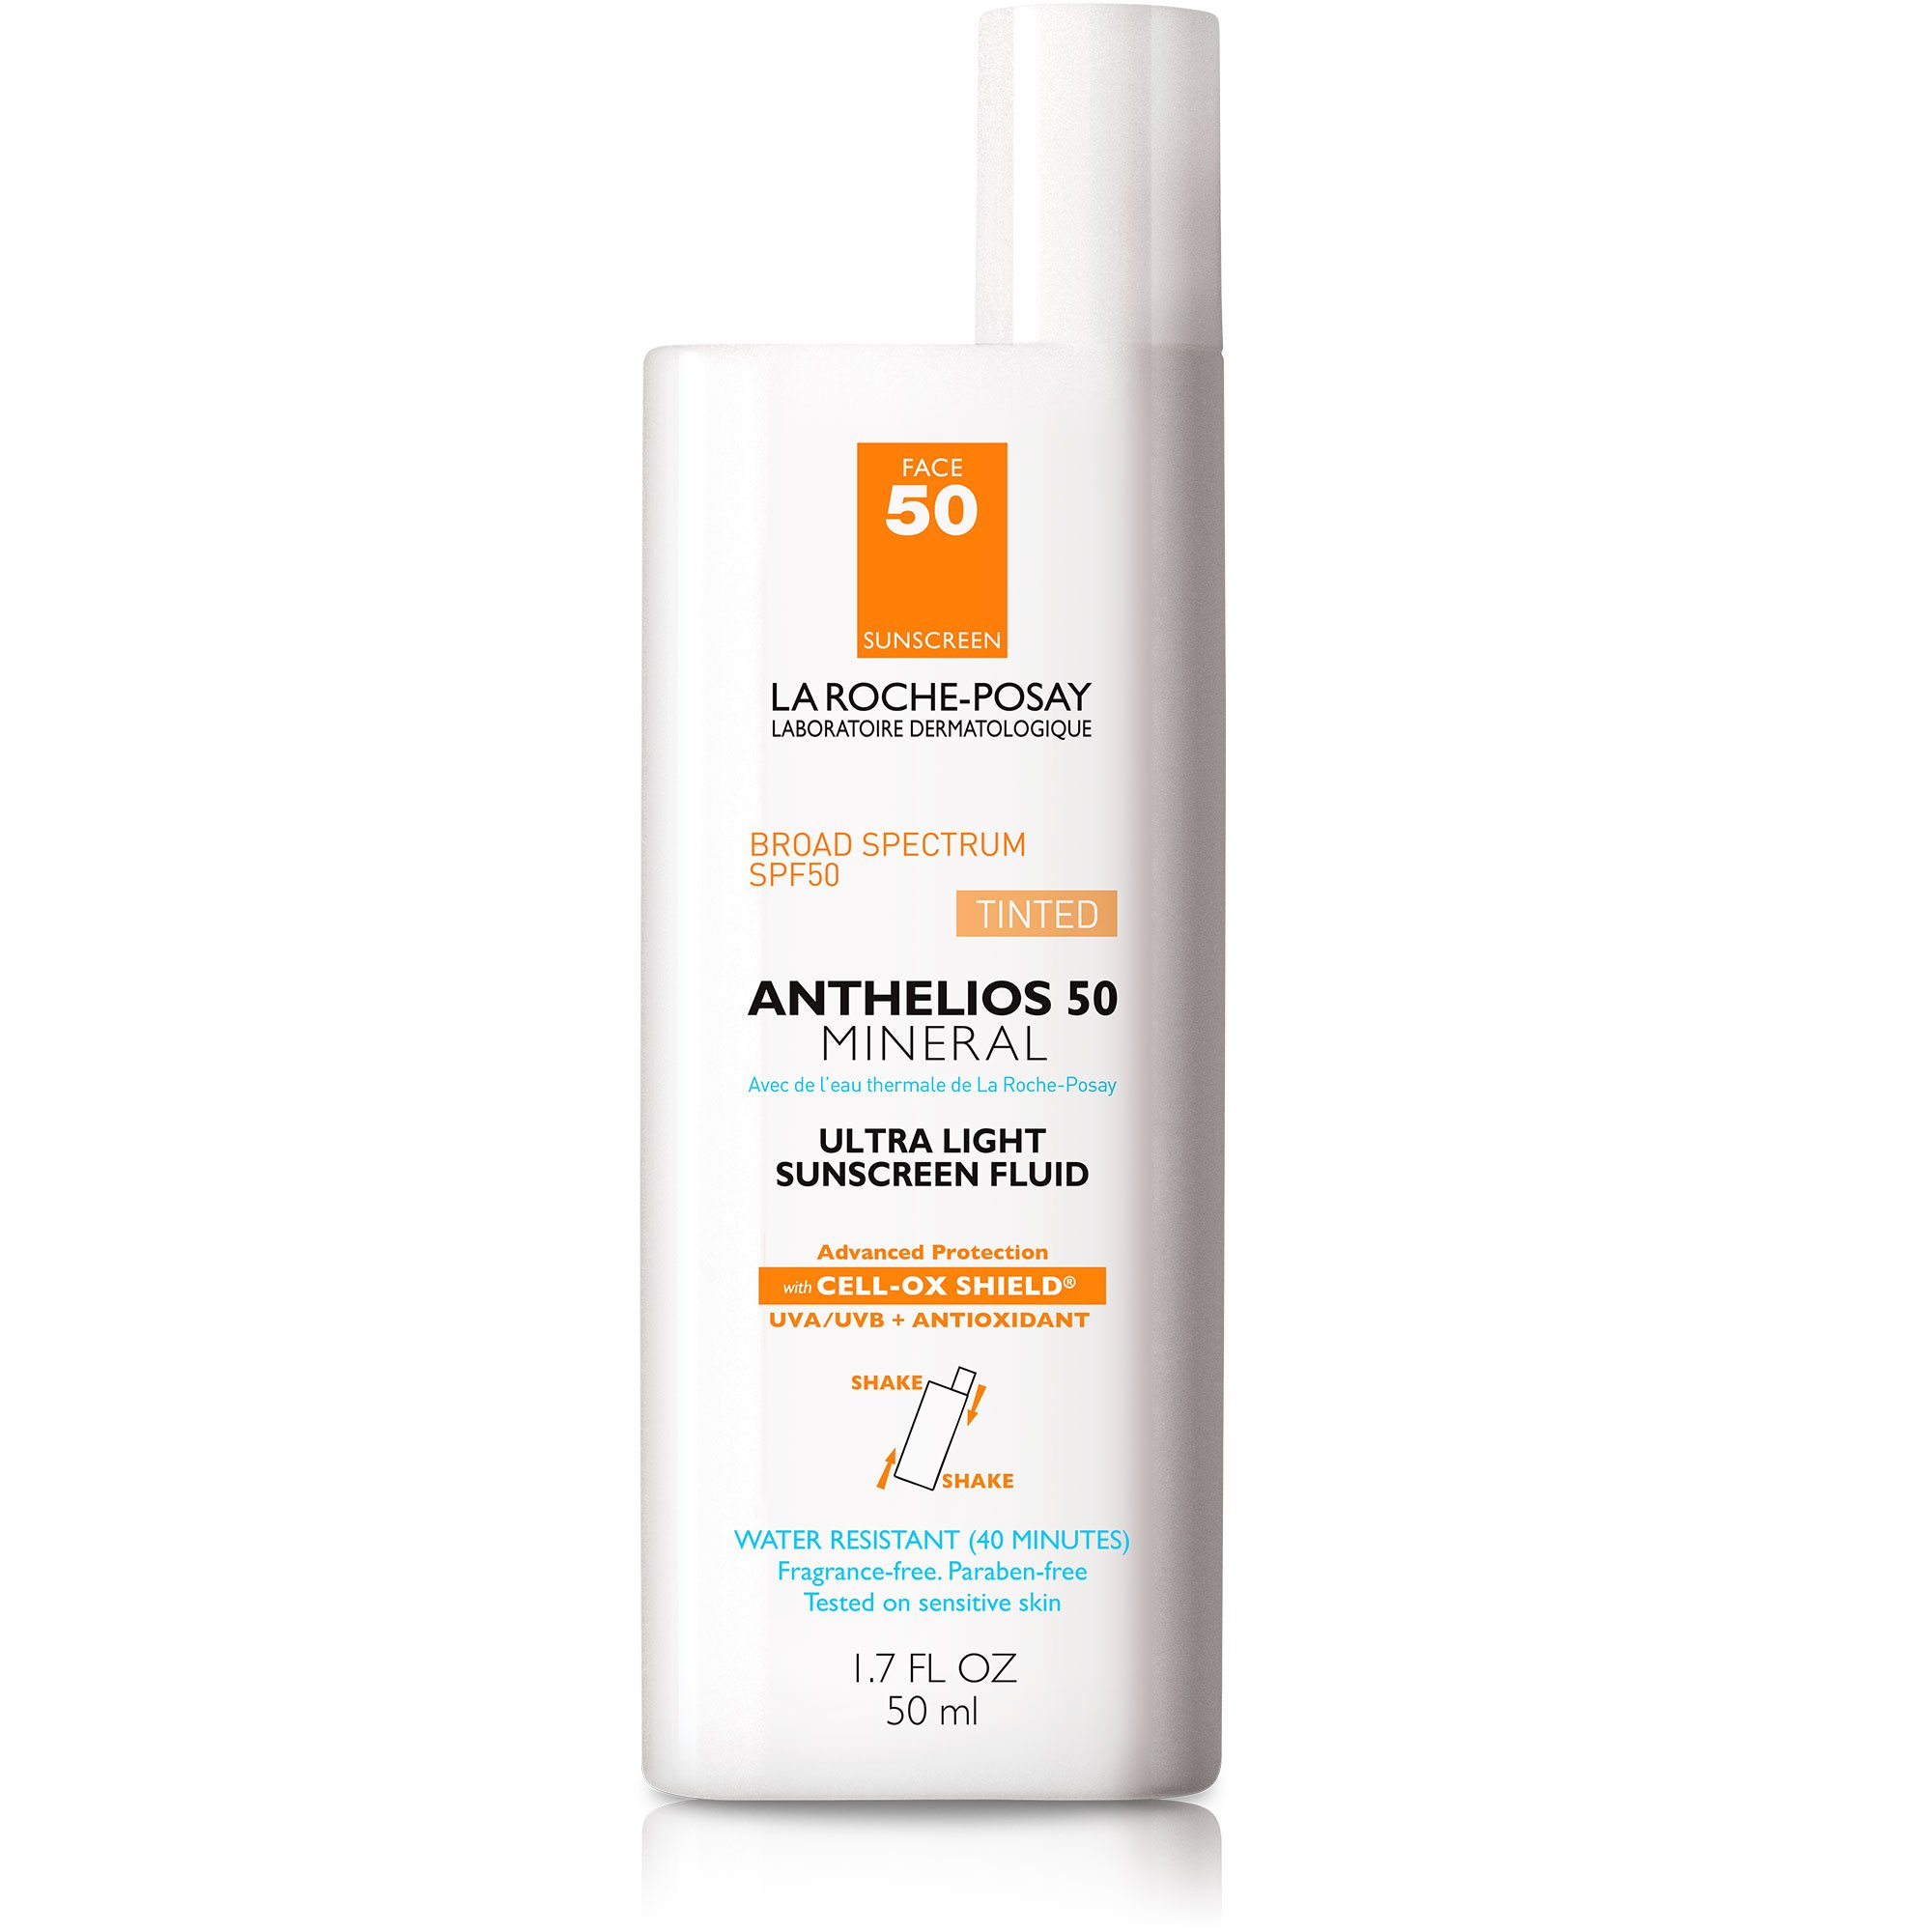 La Roche-Posay Anthelios Ultra-Light Tinted Mineral Sunscreen SPF 50, 1.7 Fl. Oz. by La Roche-Posay (Image #1)